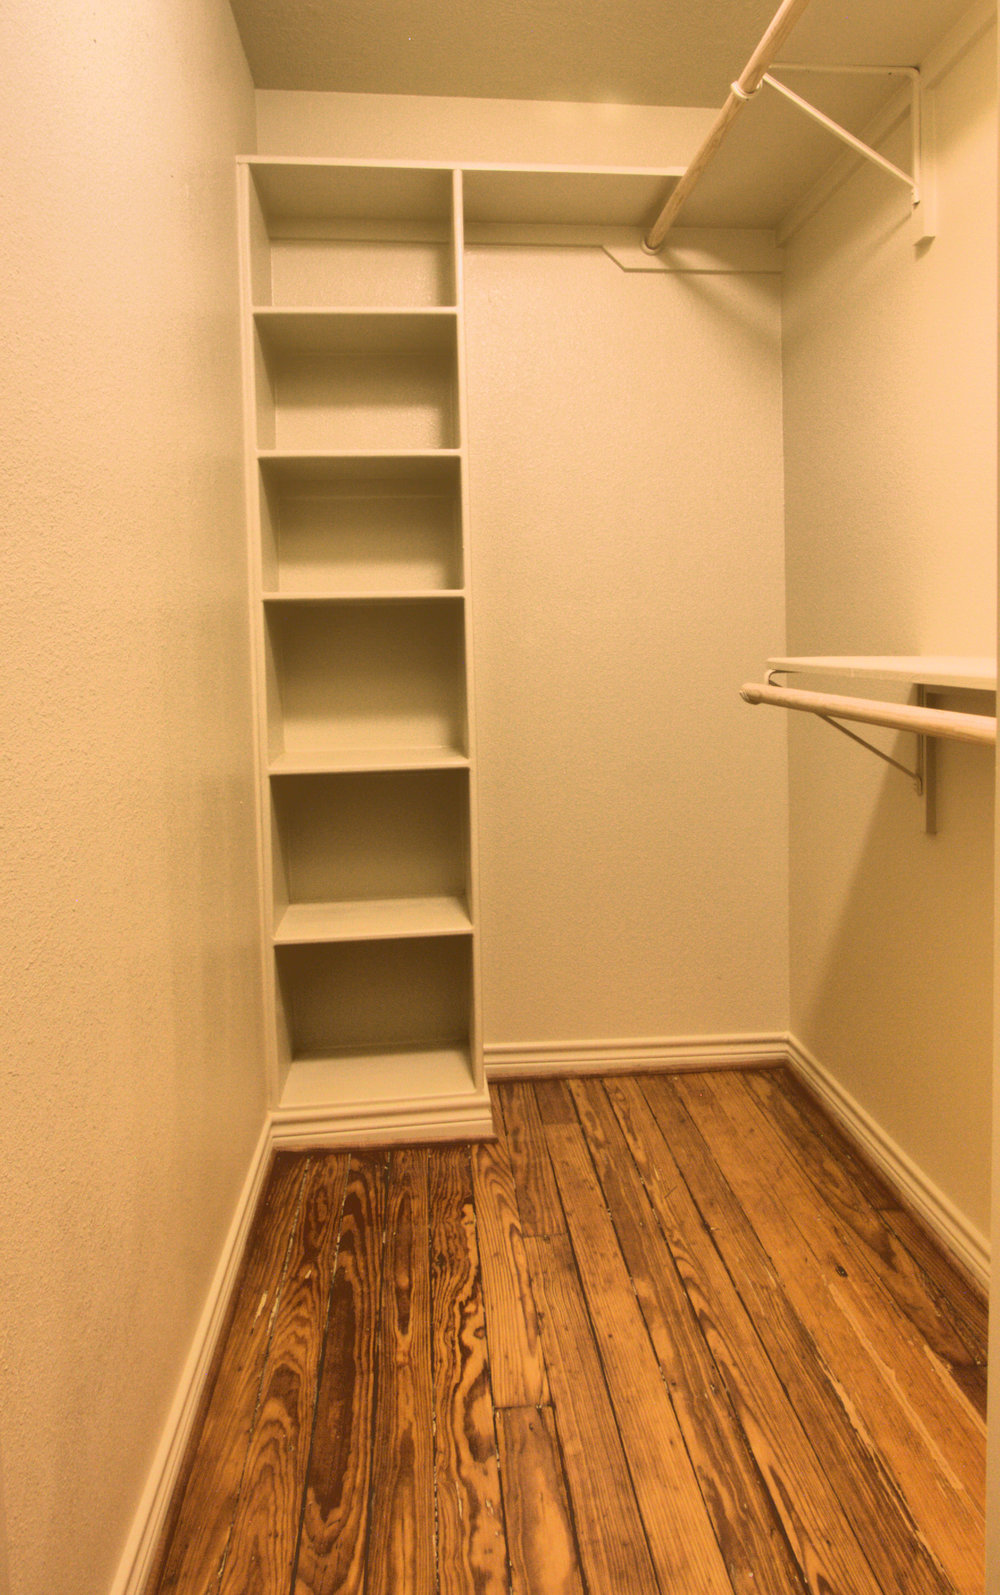 6 Perry Lofts Closet photo 6 11x22 300dpi.jpg